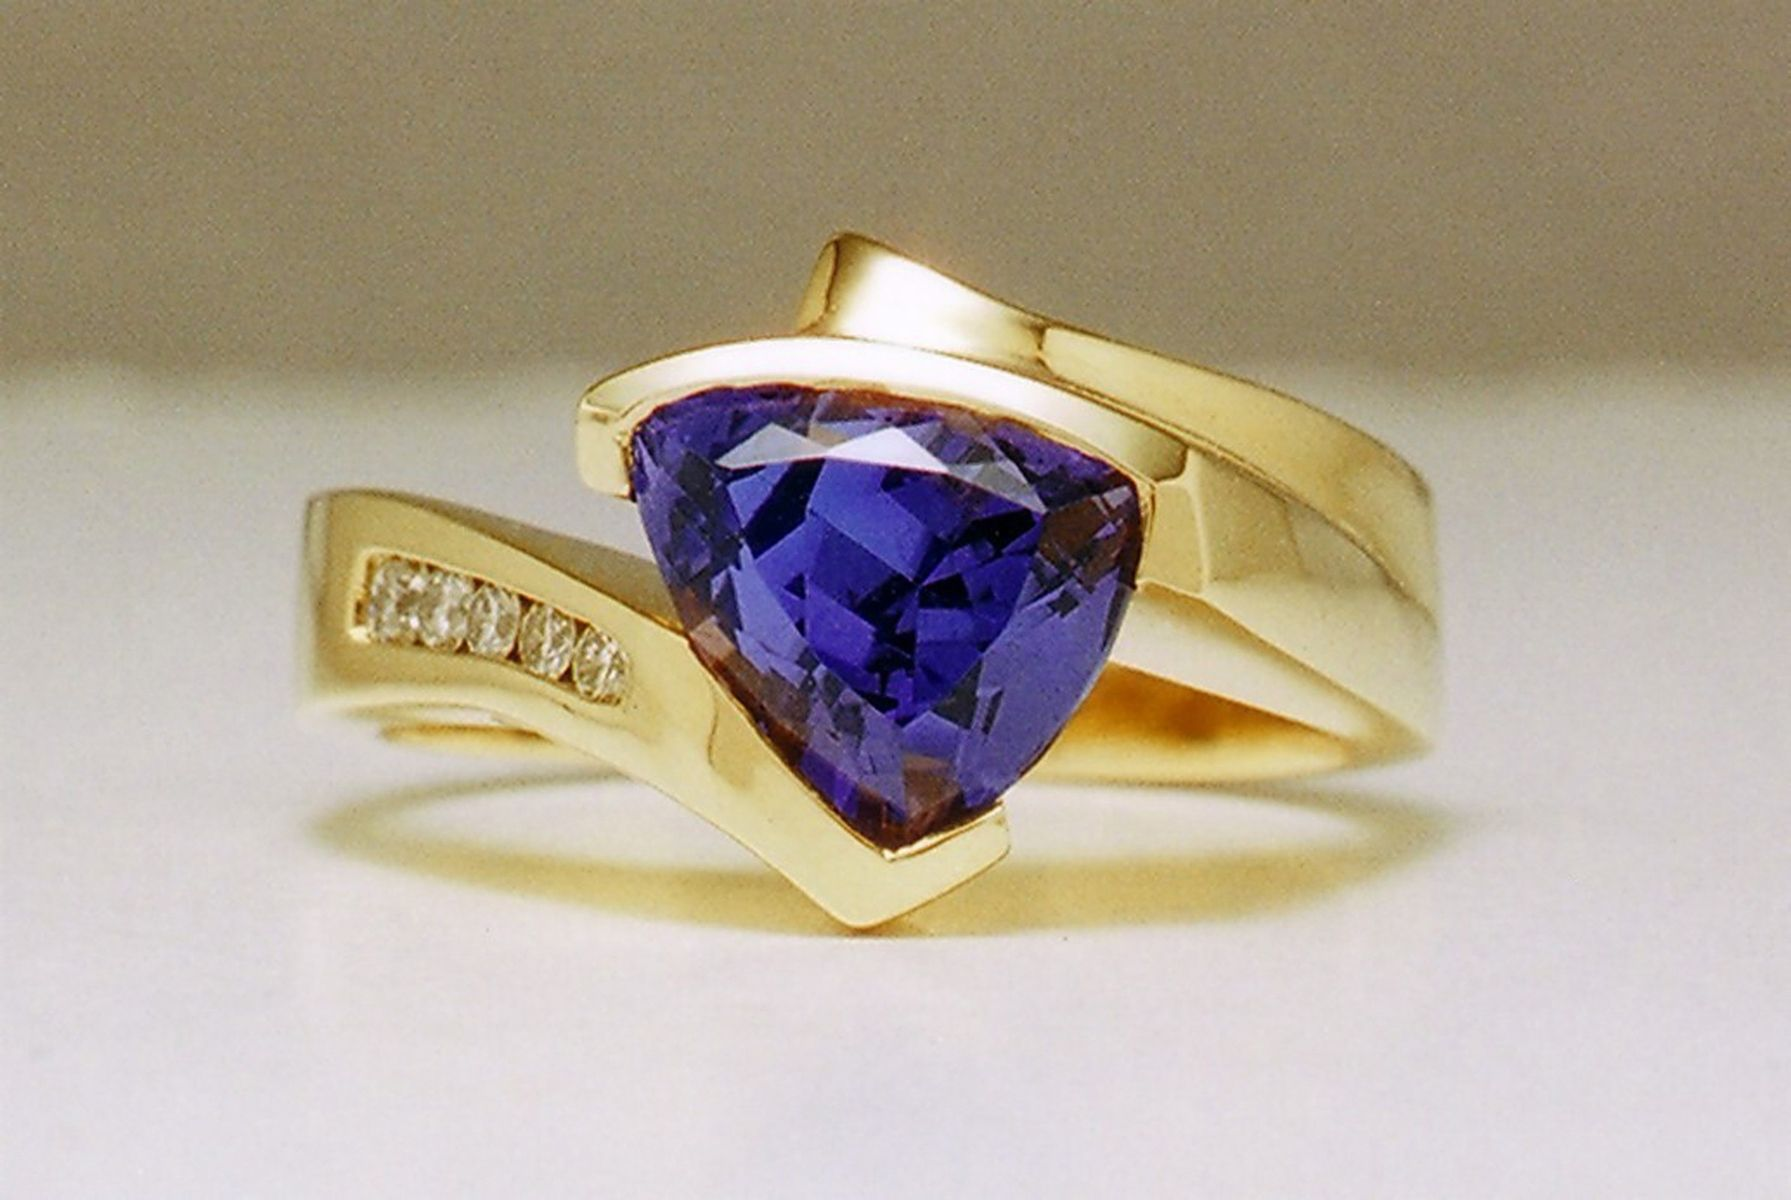 tanzanite bands wedding cut gold huiy blue fullxfull il band promise deco diamond white engagement ring cushion